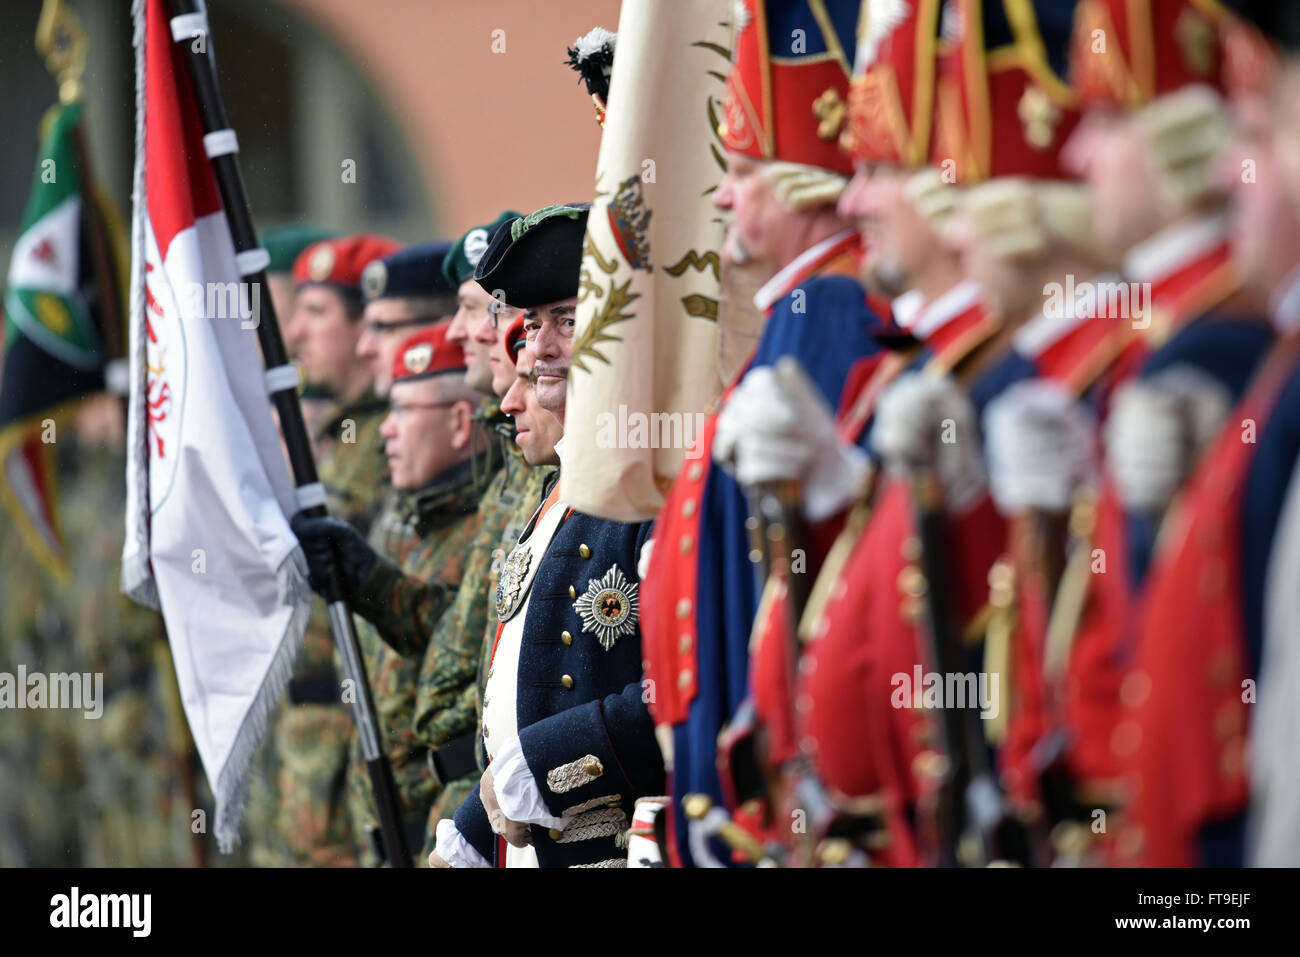 Potsdam, Germany. 22nd Mar, 2016. Soldiers with the Brandenburg State Commando (L) and soldiers in historical, Prussian - Stock Image